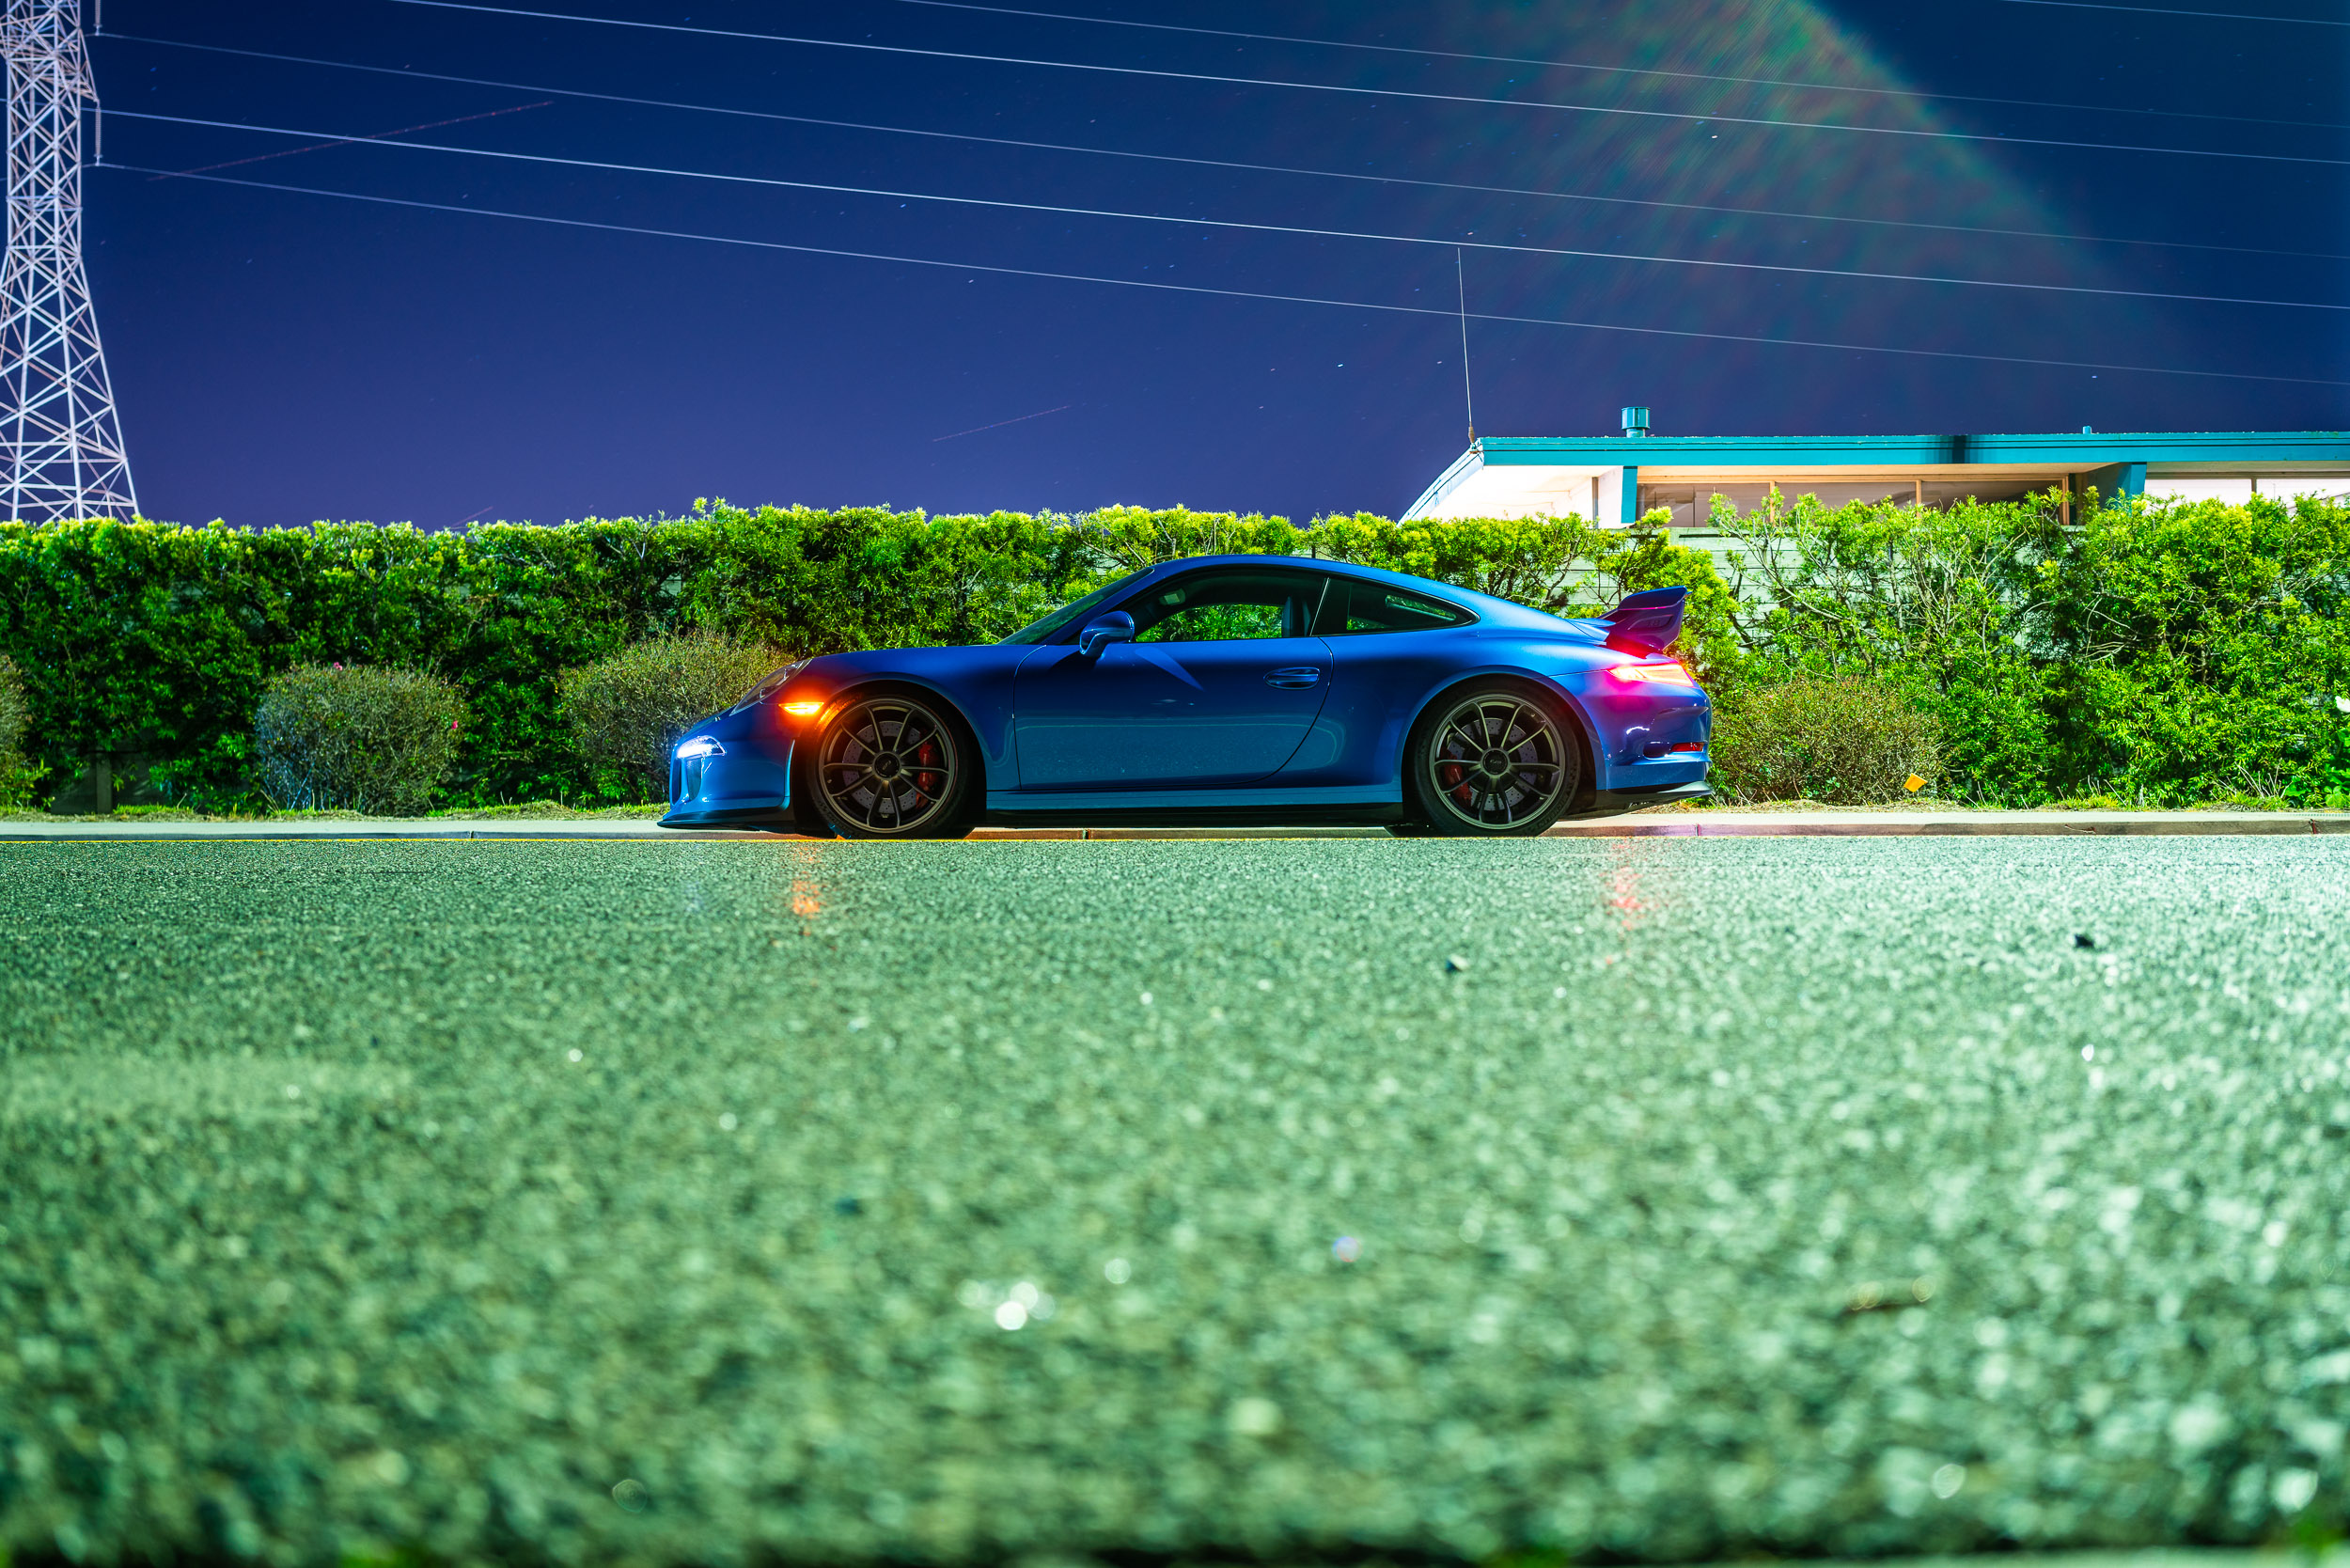 gt3-san-mateo-night.jpg